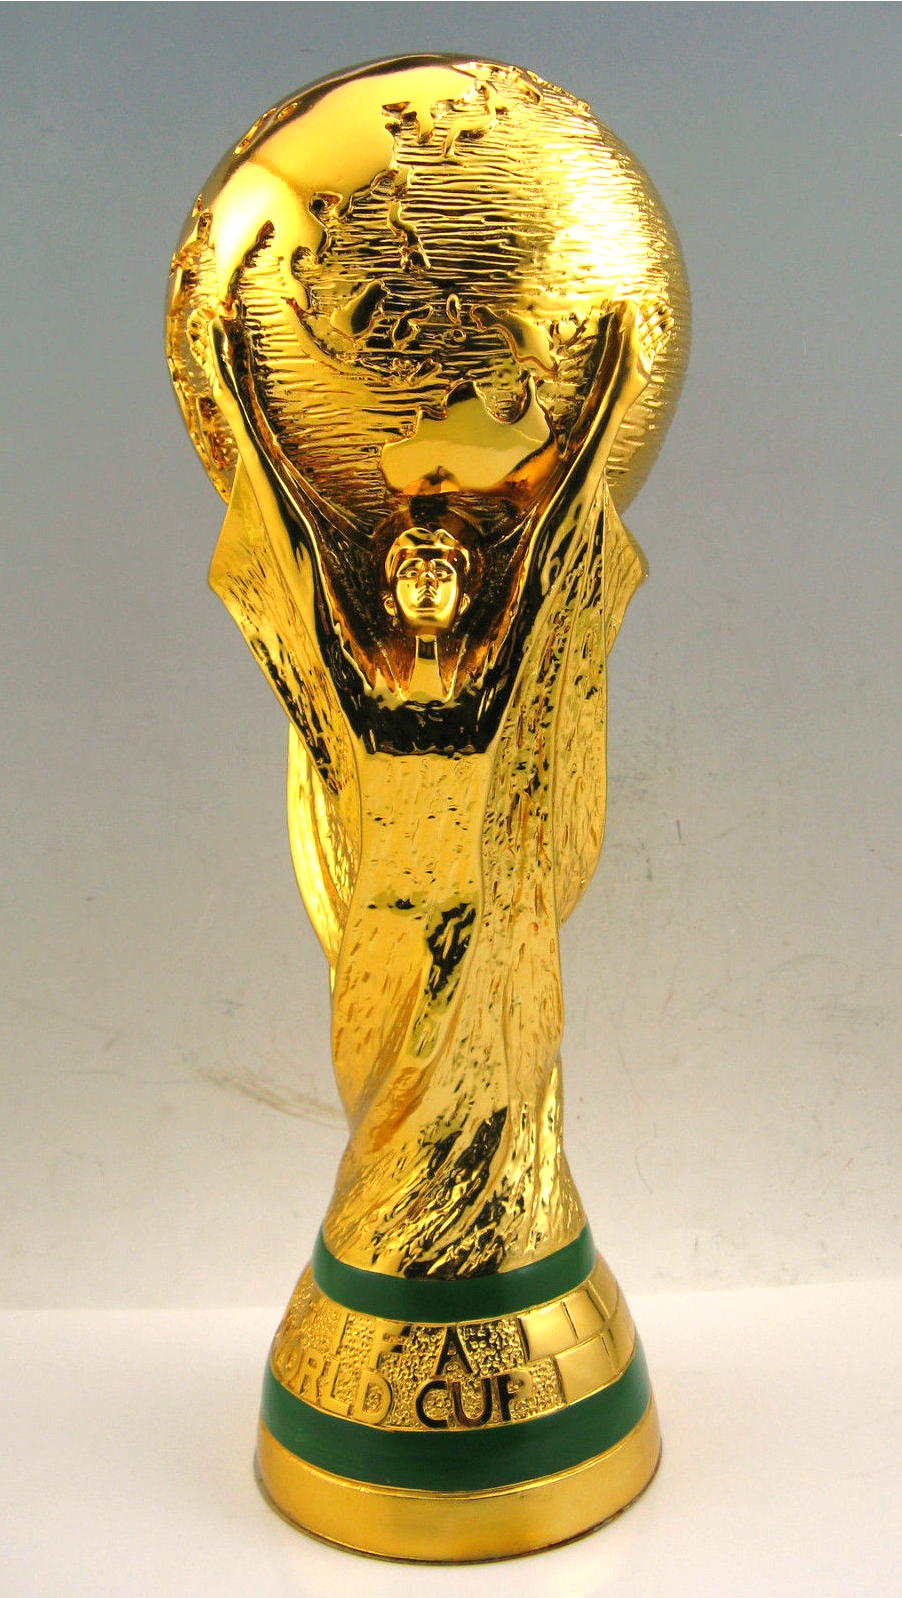 New Boxed 2018 Fifa Mini World Cup Replica Trophy Official Licensed Product